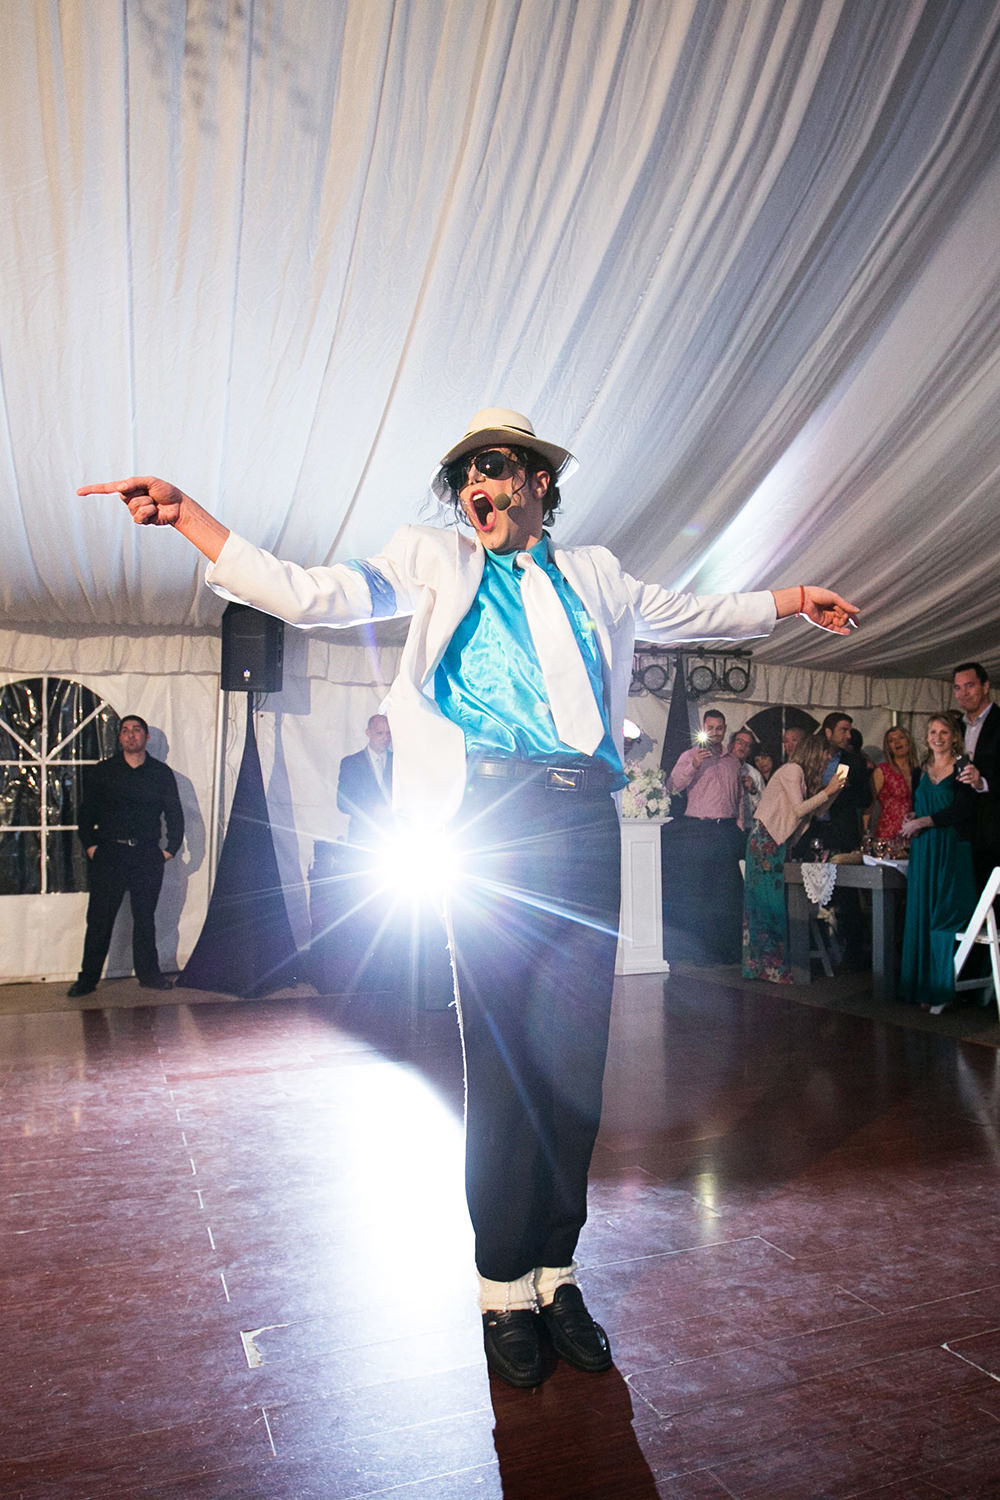 Michael Jackson puts on an amazing performance at this Twin Oaks Wedding Reception